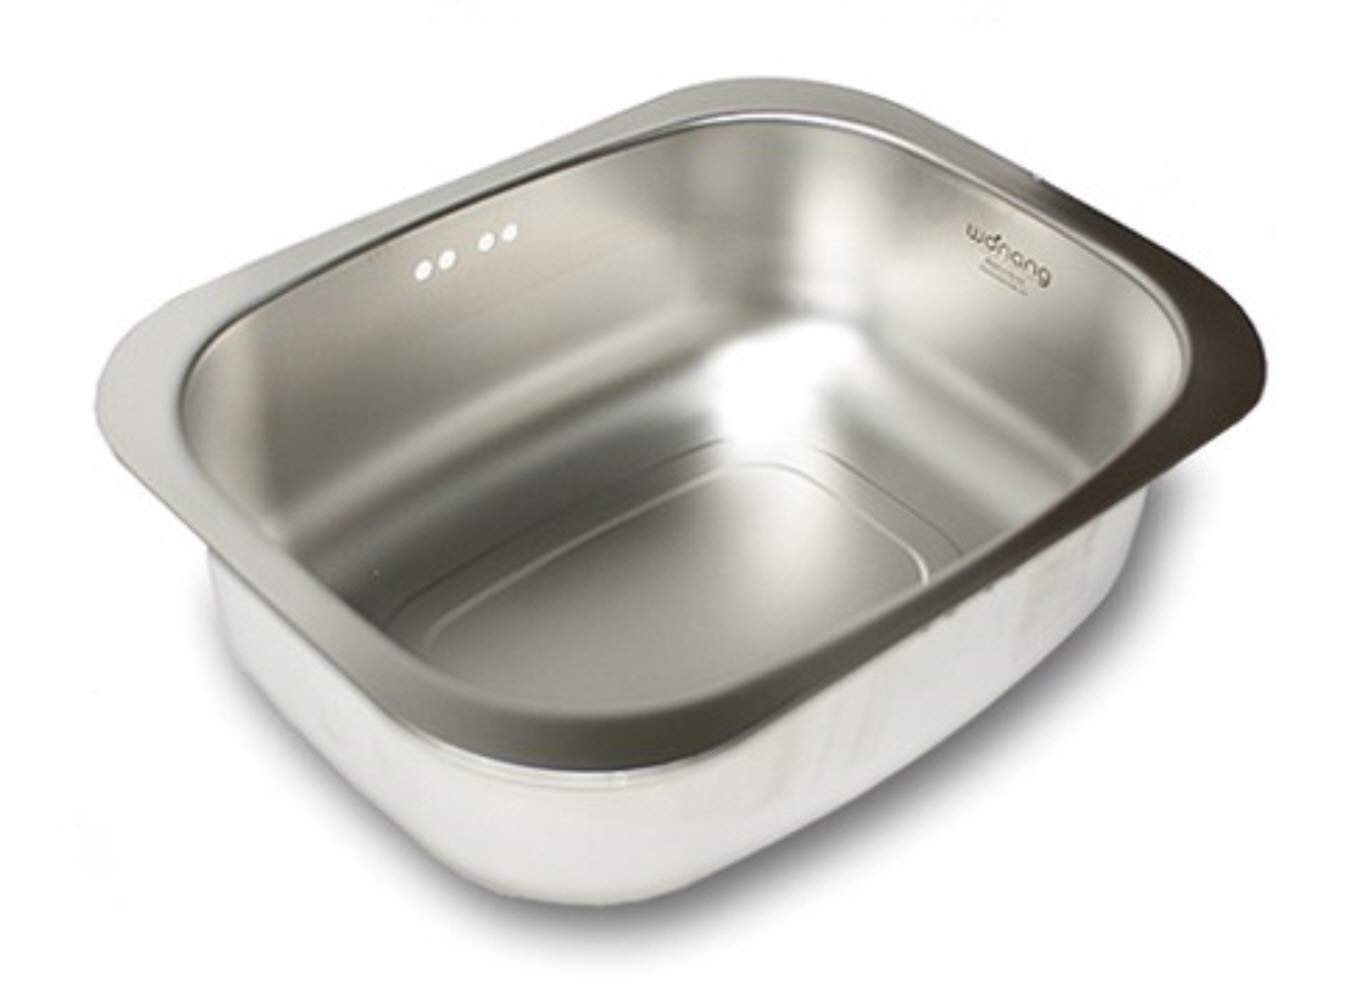 WANANG Stainless Steel Washing-up Bowl Multi-purpose Dish Tub for Sink Wash Basins Dishpan for Sink